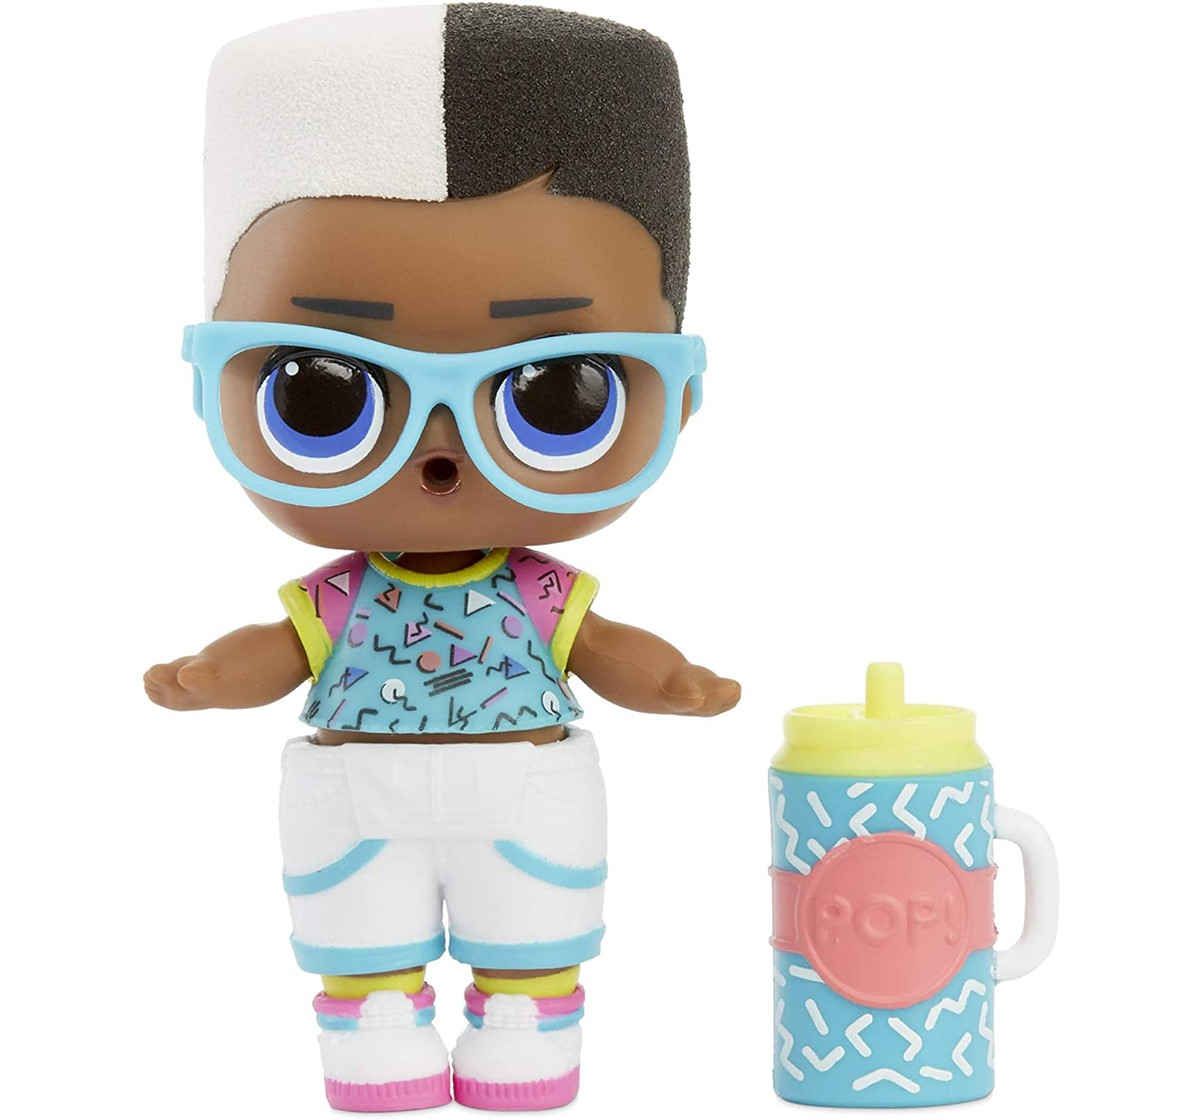 Lol  Surprise Boys  Collectible Dolls for Girls age 4Y+